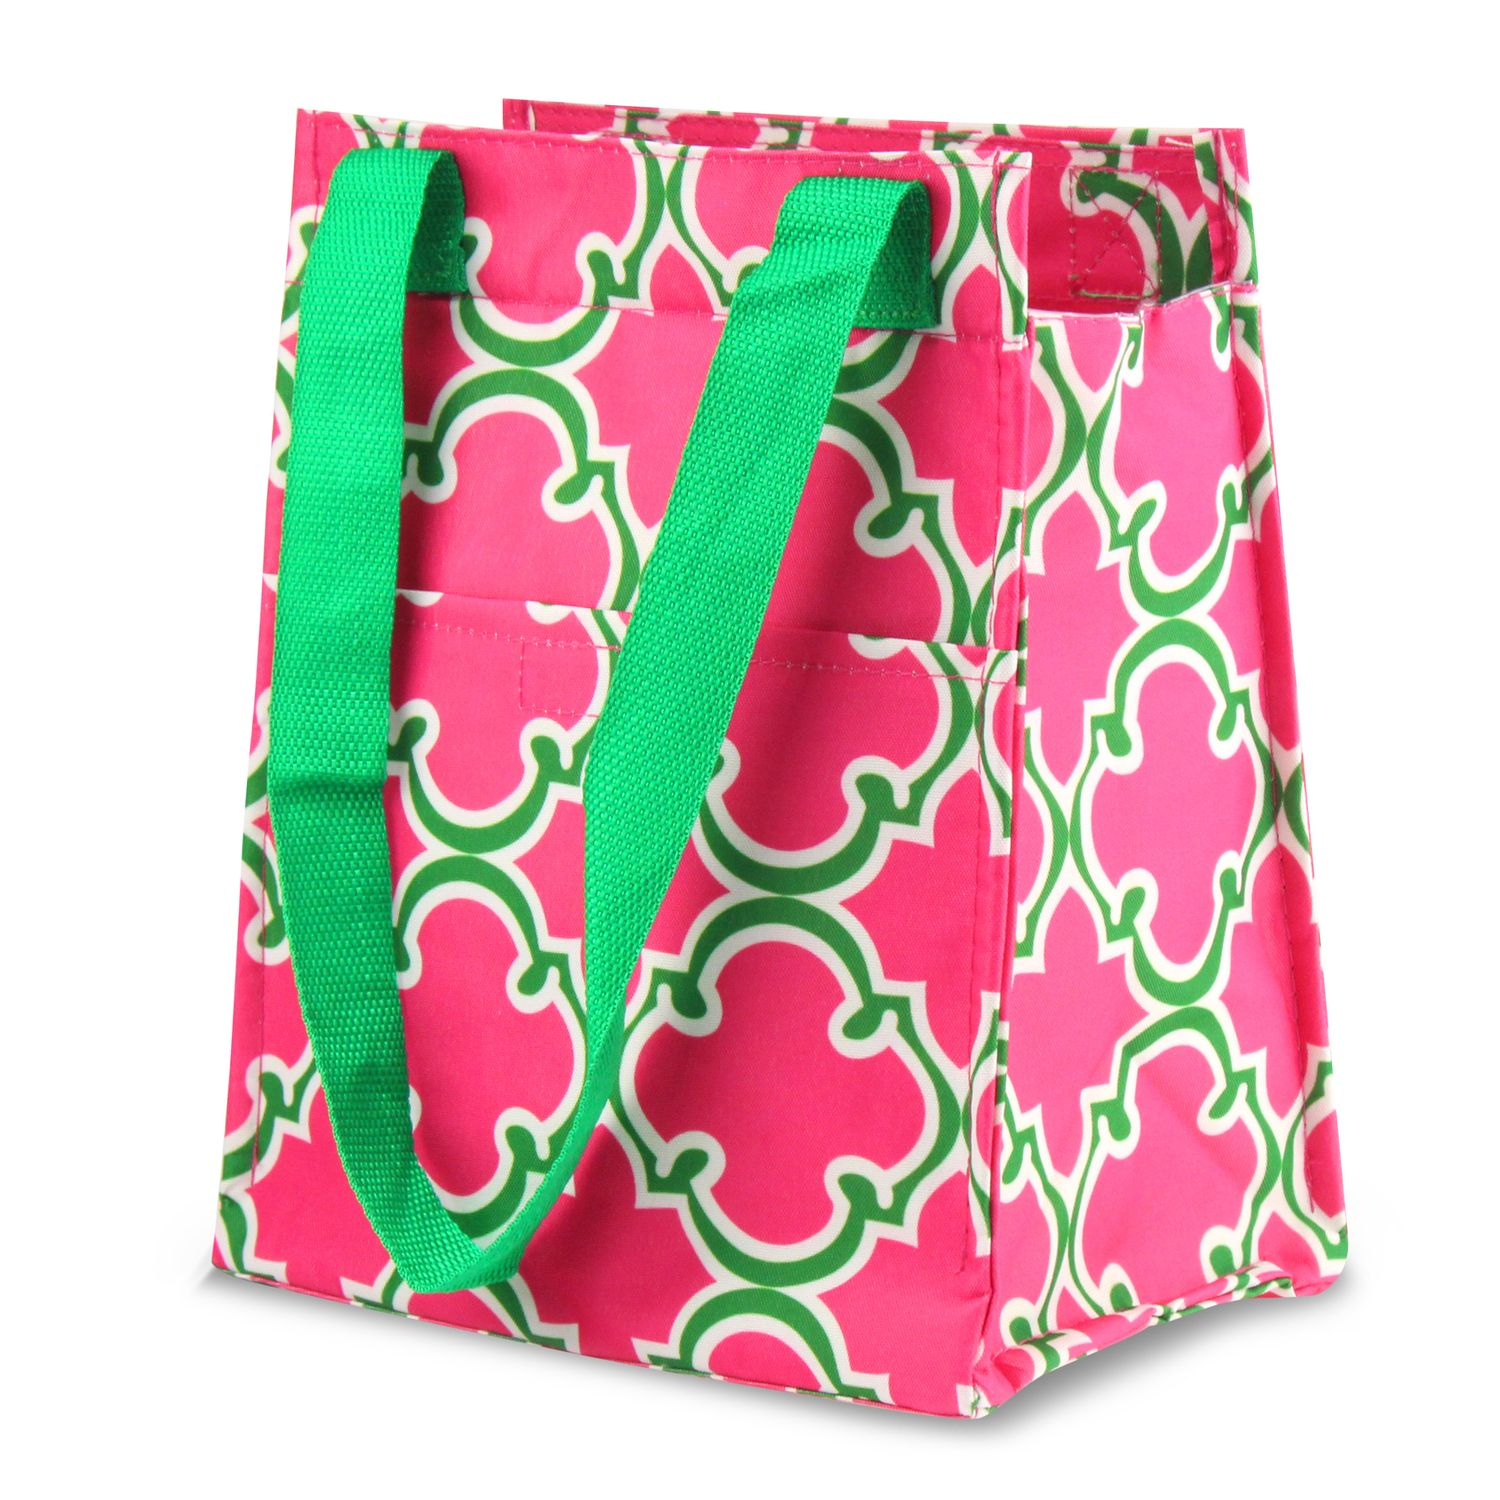 "Leak Resistant Reusable Insulated Lunch Tote Carry Storage Organizer Zip Cooler Bag by Zodaca (Size: 11.5"" x 6.5"" x 9"") - Pink Quatrefoil"